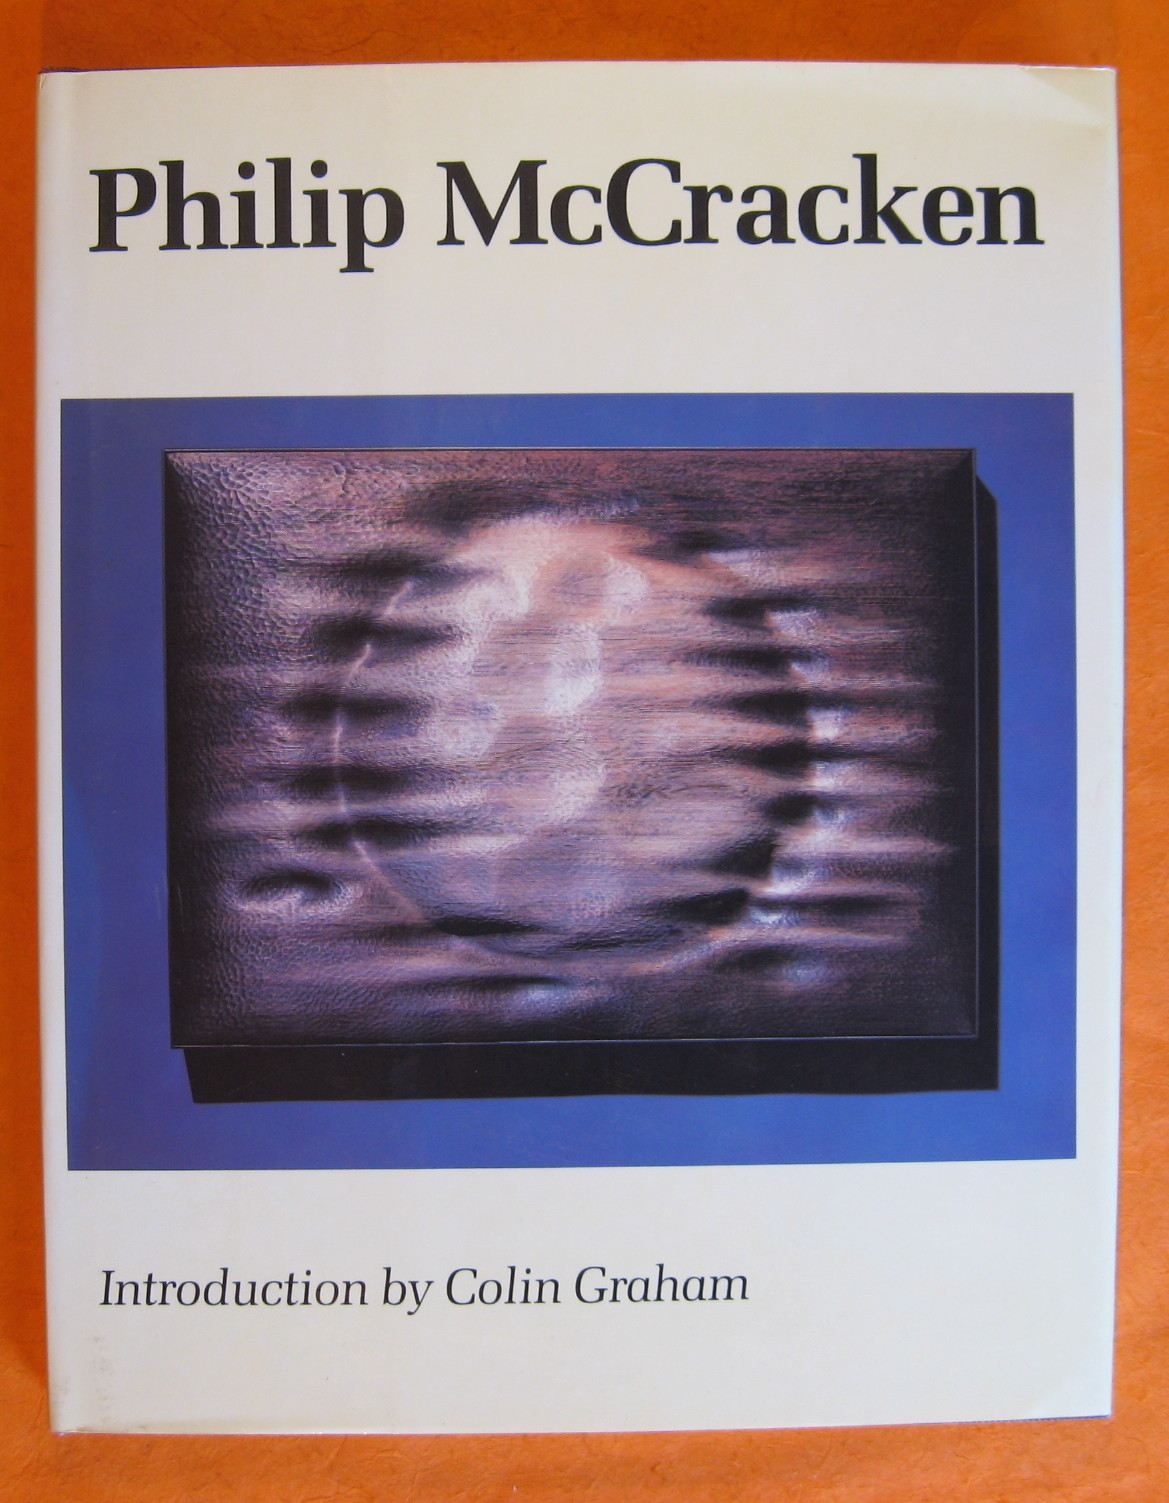 Philip McCracken, McCracken, Philip